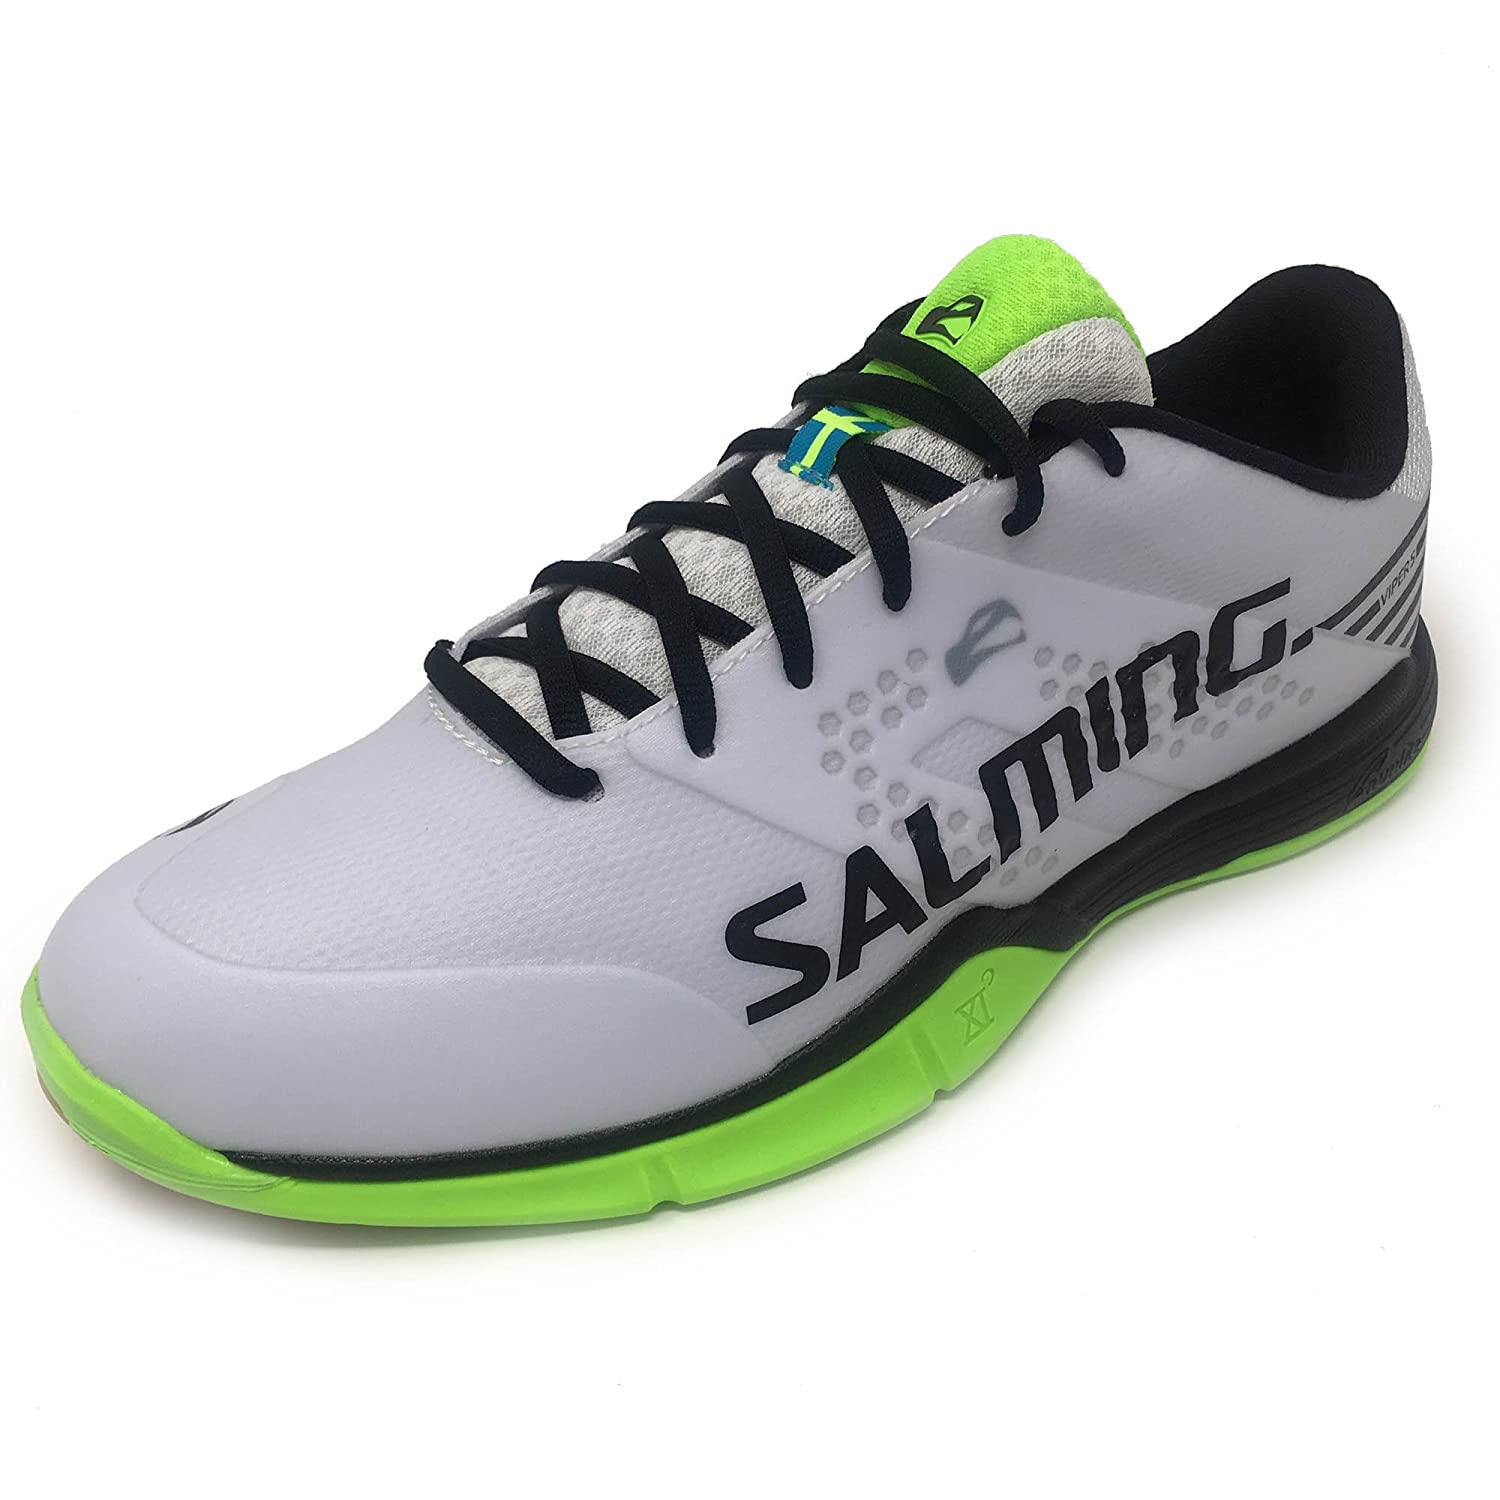 Salming Hallenschuh Viper 5 Men